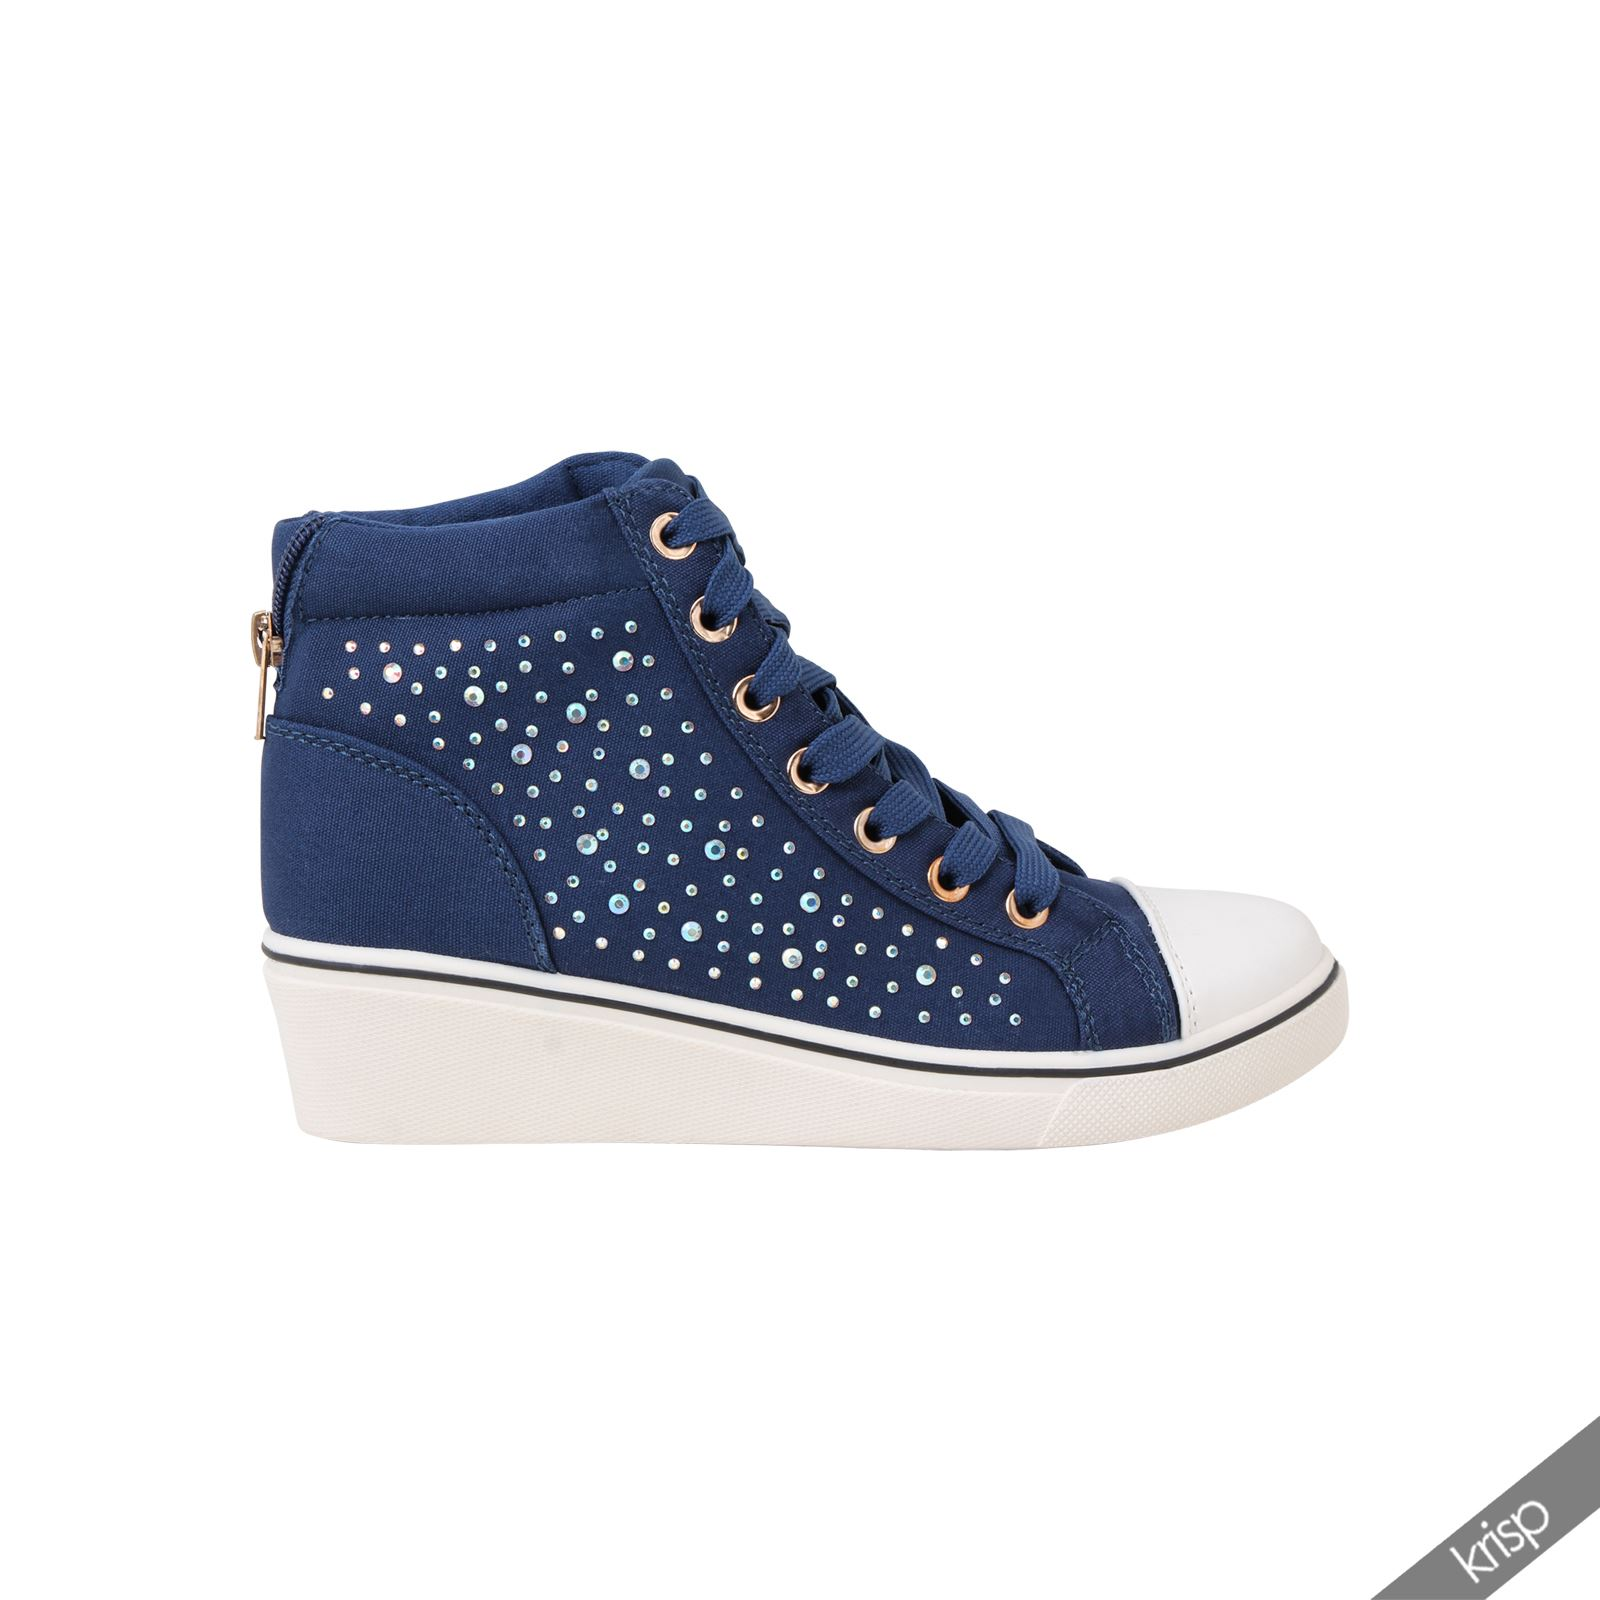 Reasonable Price Womens Sneakers High Top Shoes Fashion Trainers High Heel Wedge Lace Up Canvasx